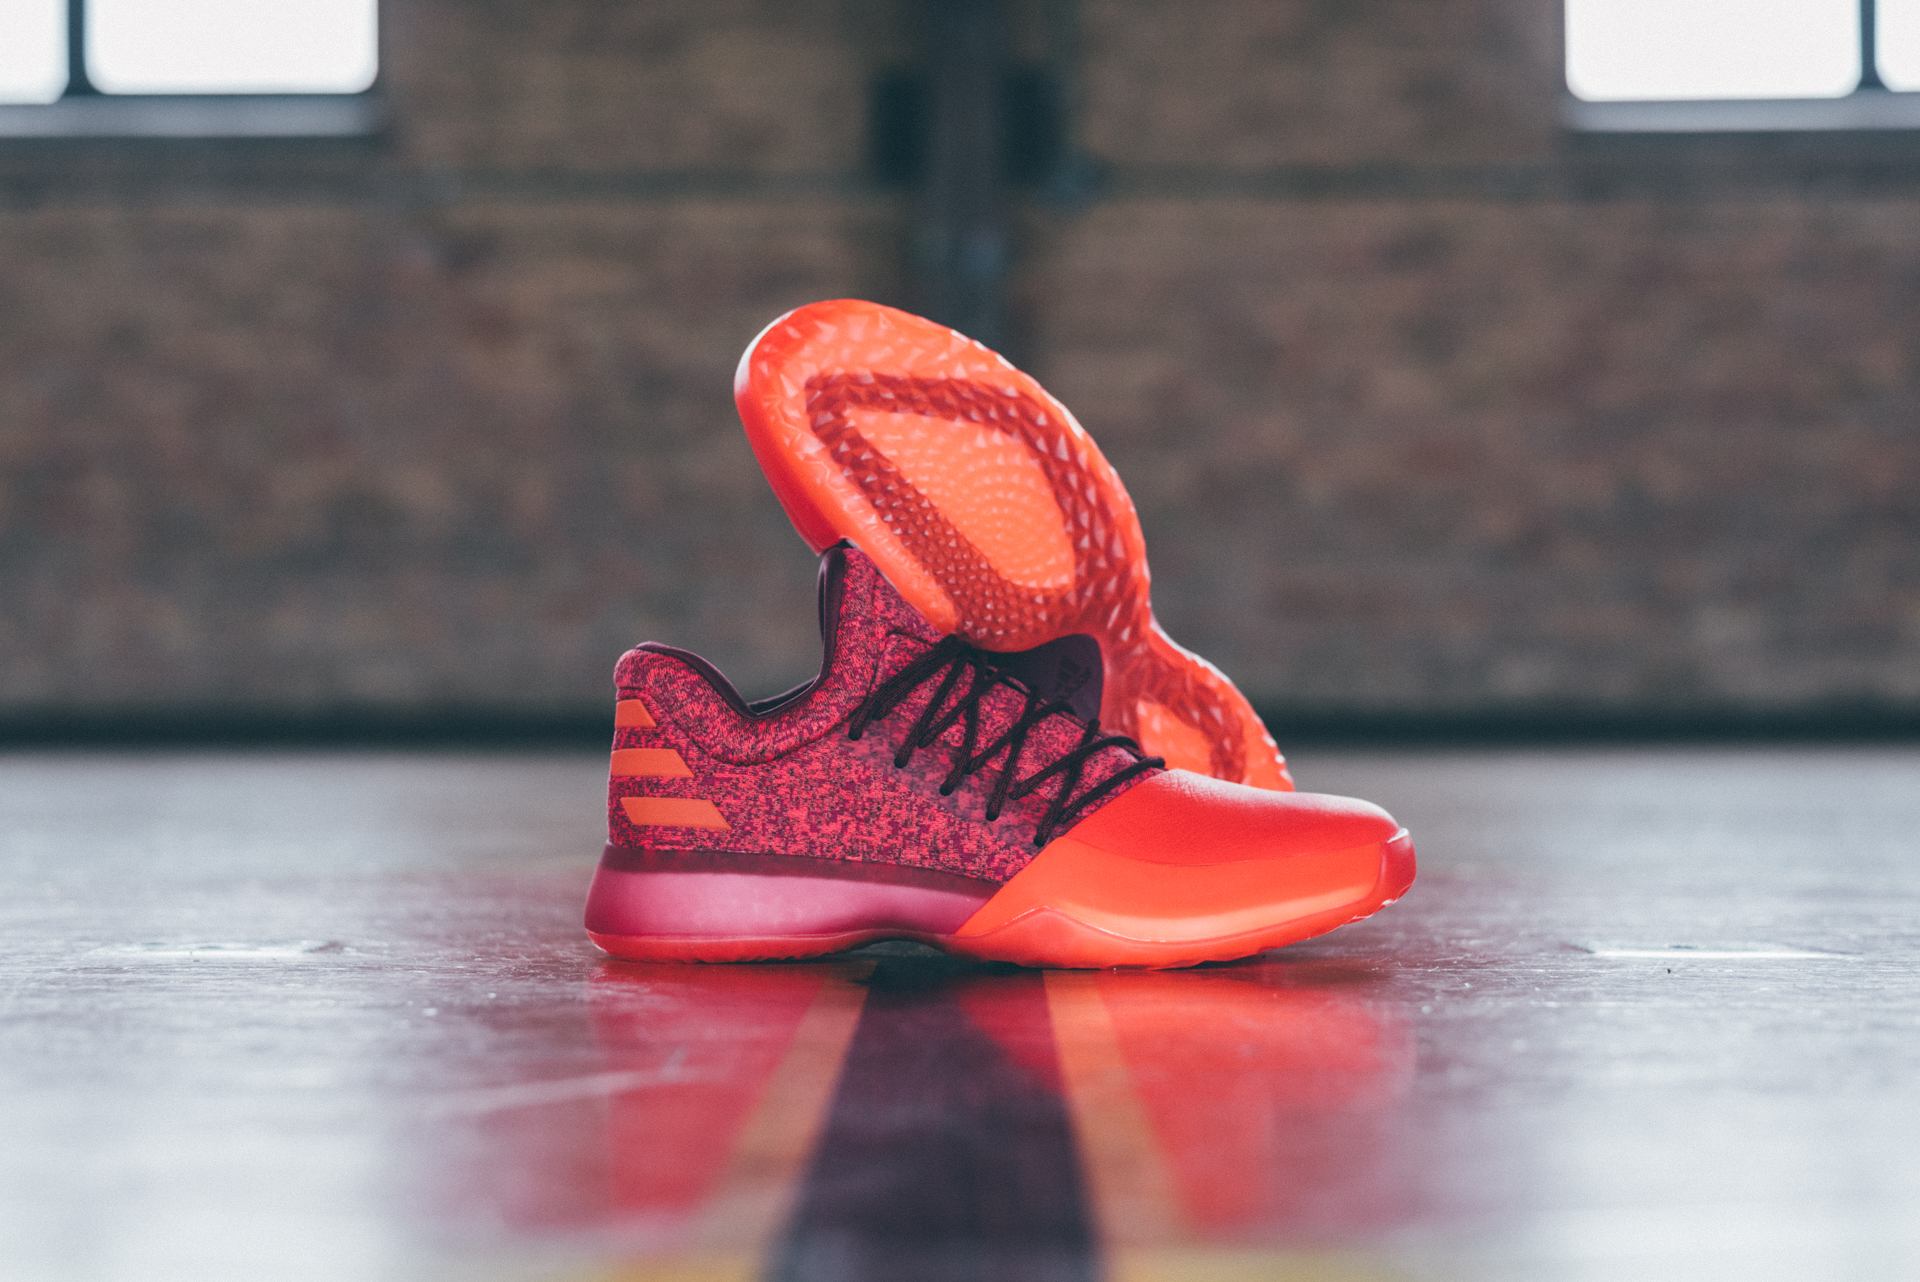 2cd26f6e446 ... the latest chapter of Harden Vol. – Red Glare. The new colorway features  a vibrant leather toe shroud with a knit upper and matching accents  designed in ...